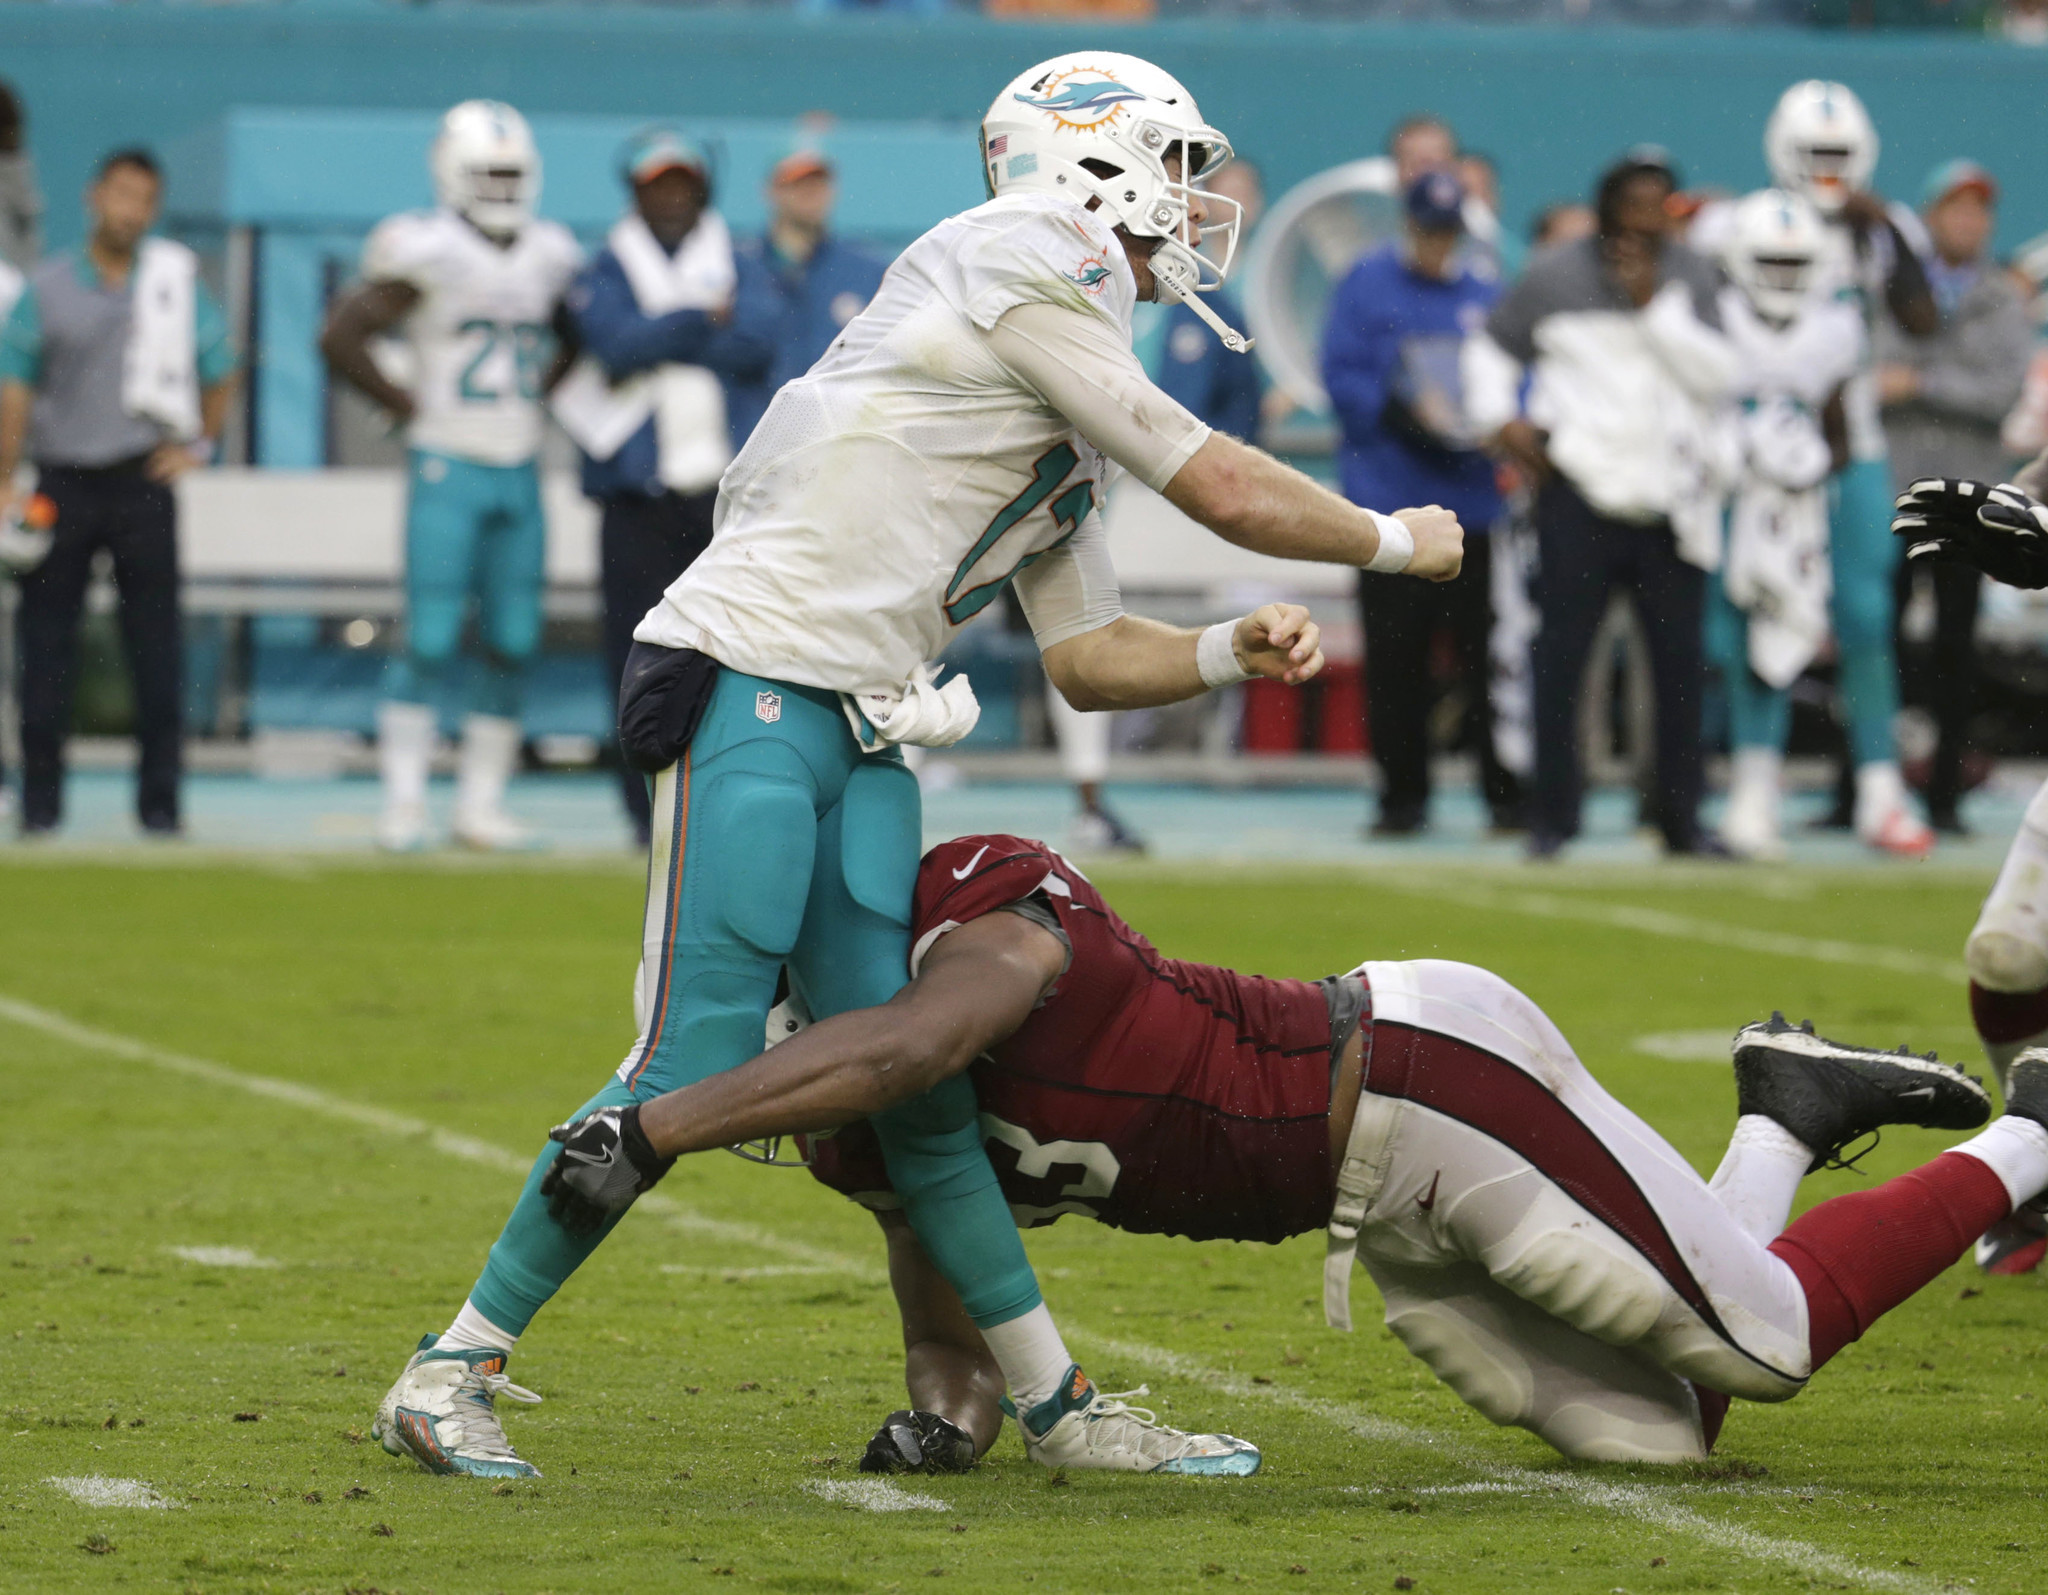 Cardinals Calais Campbell apologizes to Ryan Tannehill for low